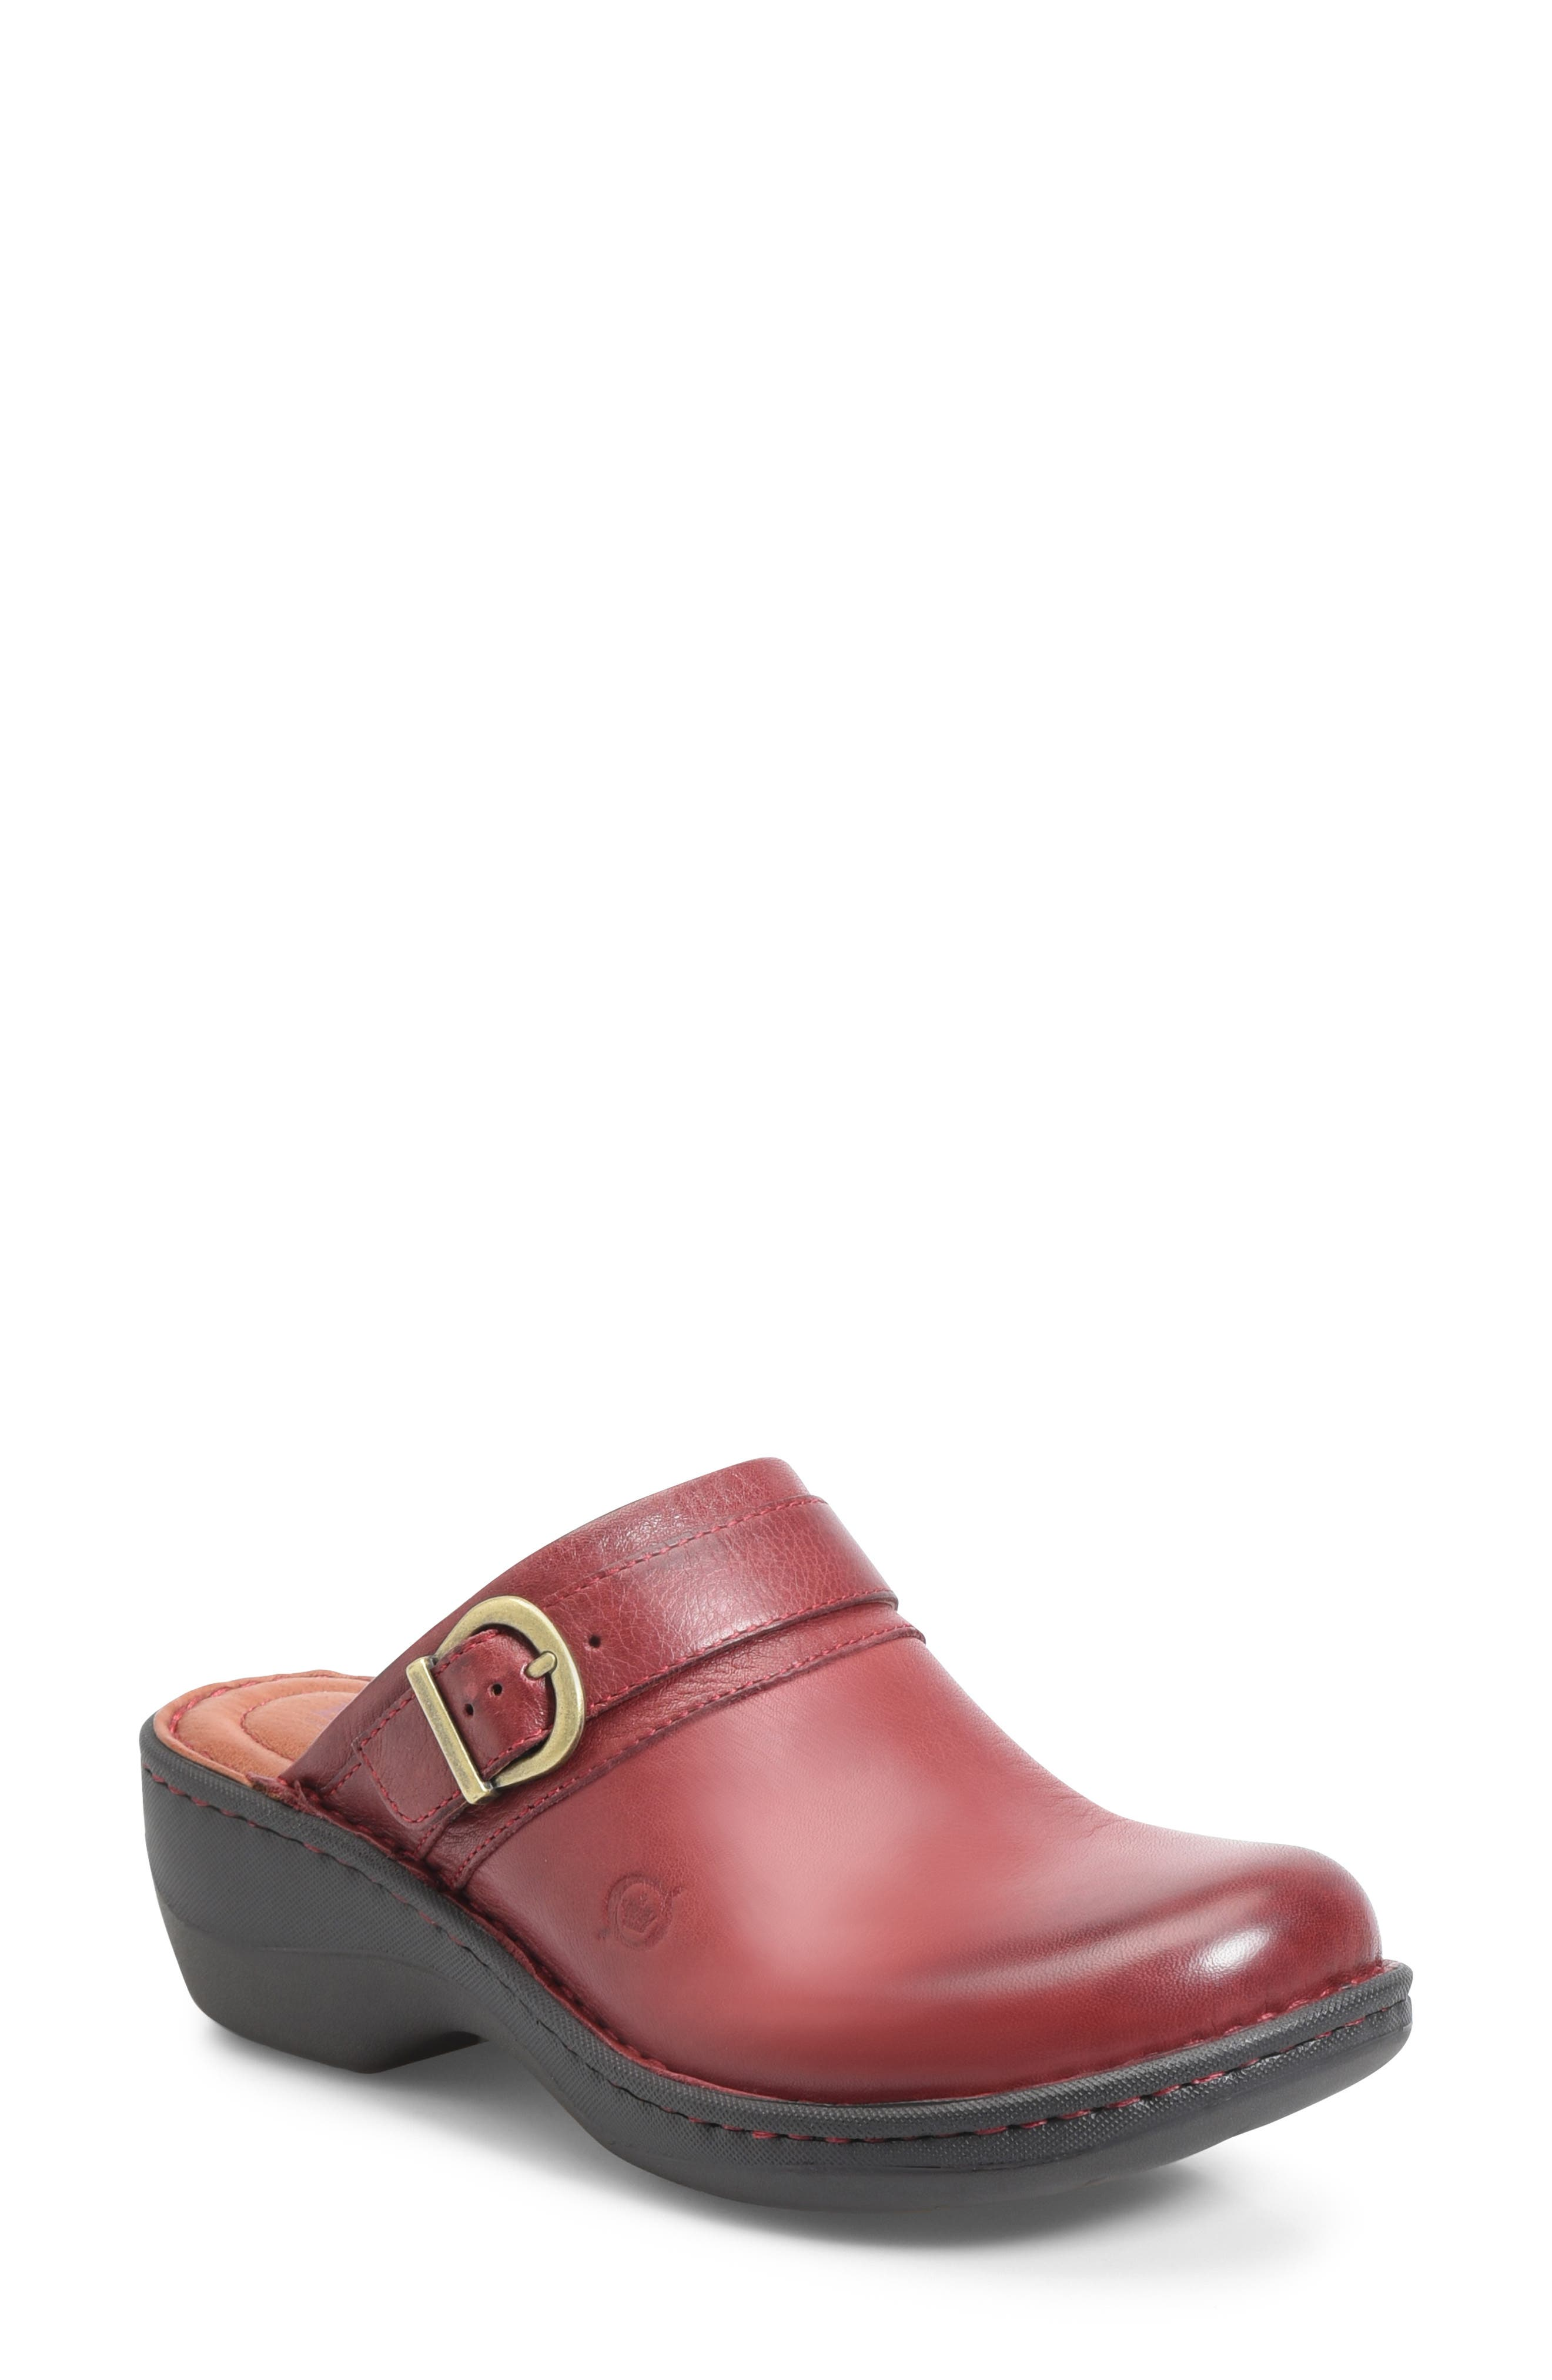 BØRN,                             Avoca Clog,                             Main thumbnail 1, color,                             RED LEATHER